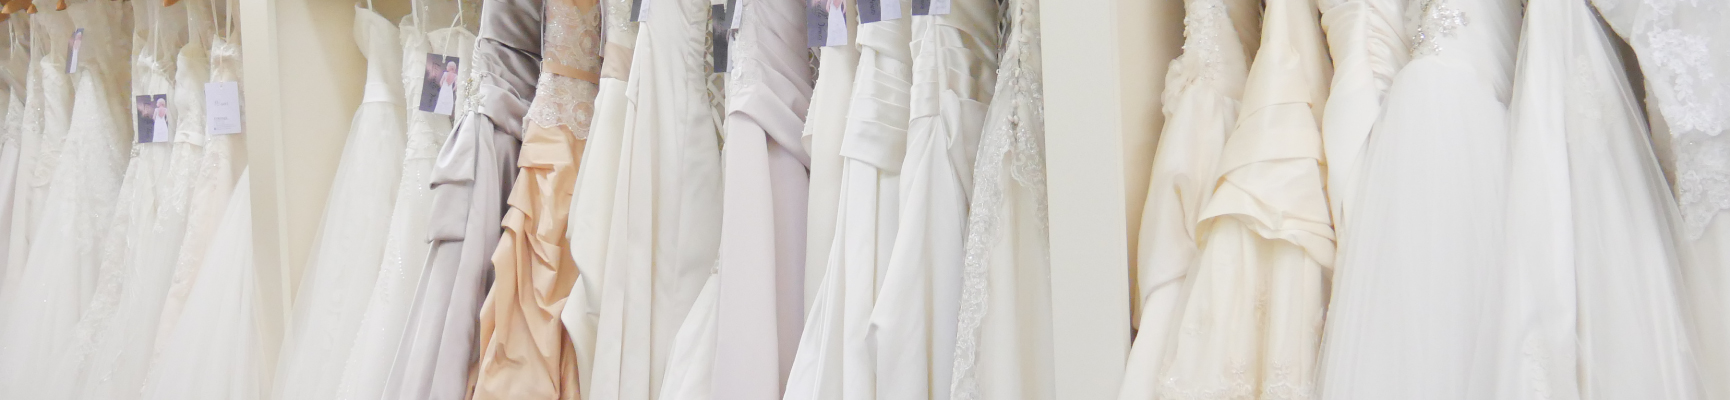 Bespoke Wedding Dresses